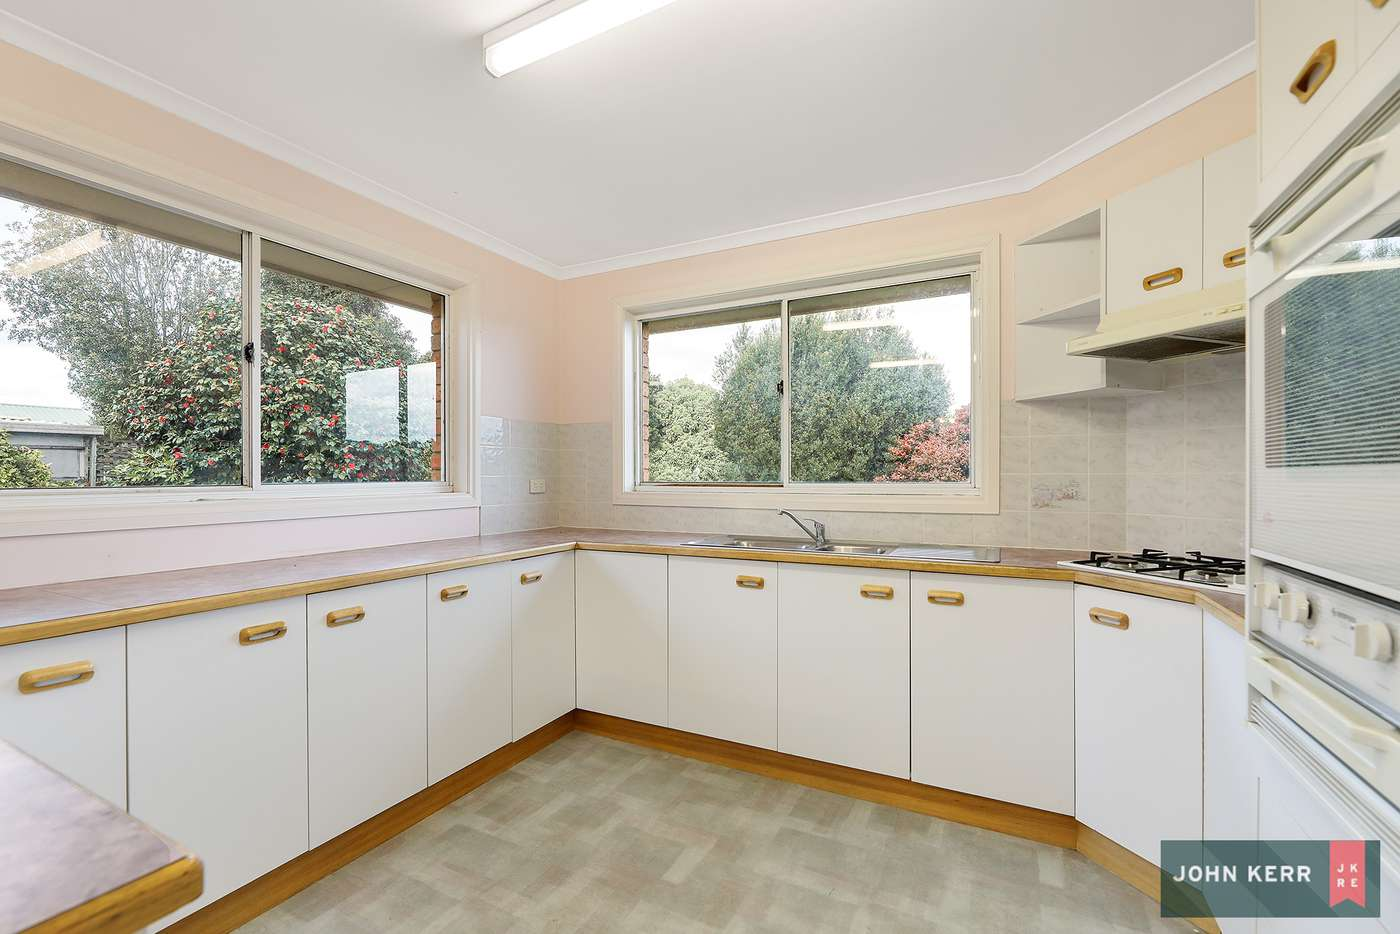 Fifth view of Homely house listing, 24 Jeeralang Avenue, Newborough VIC 3825